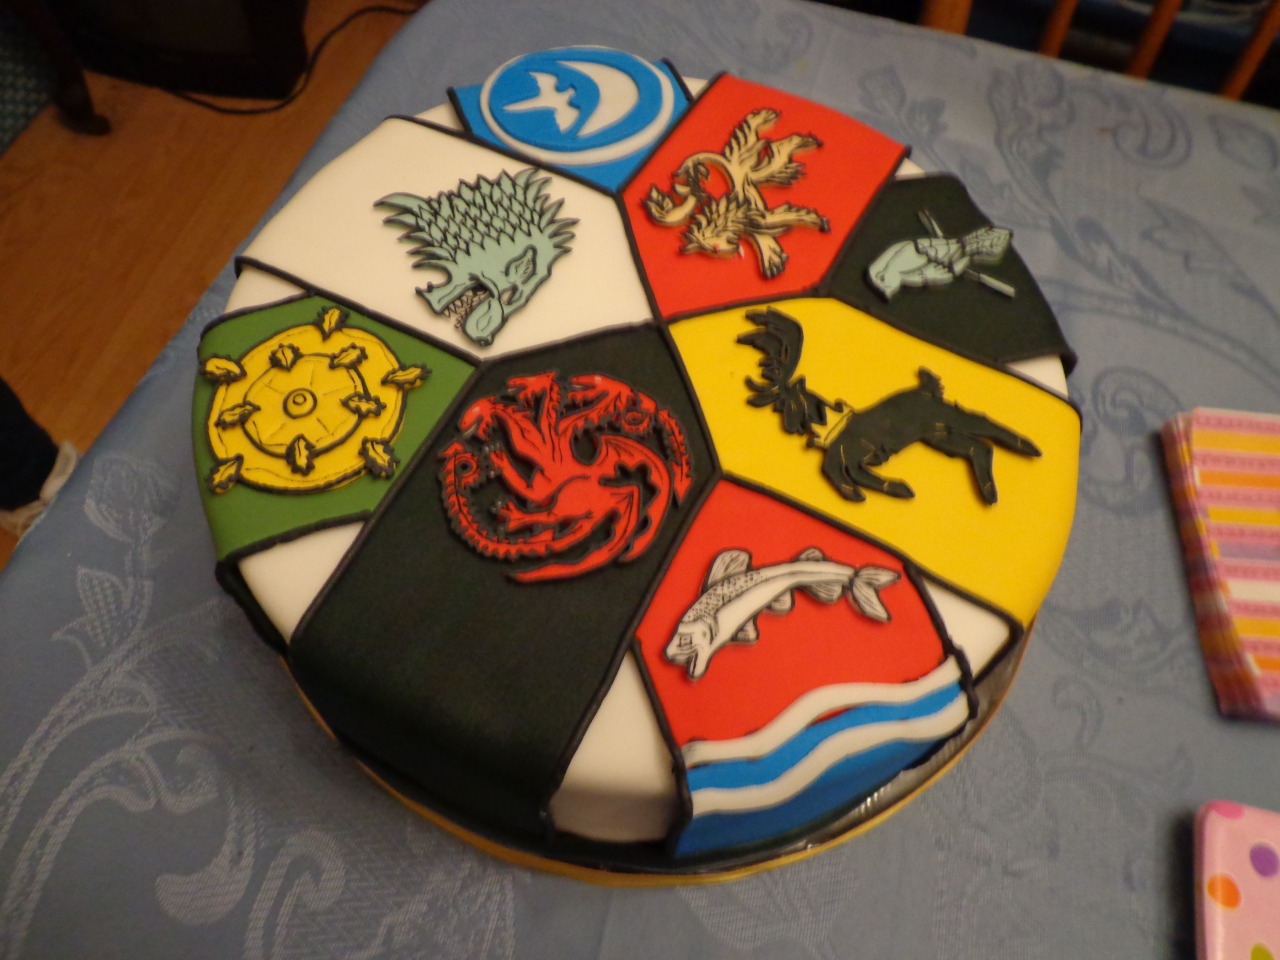 25-game-of-thrones-theme-designer-cakes-cupcakes-mumbai-33-sigil-cake